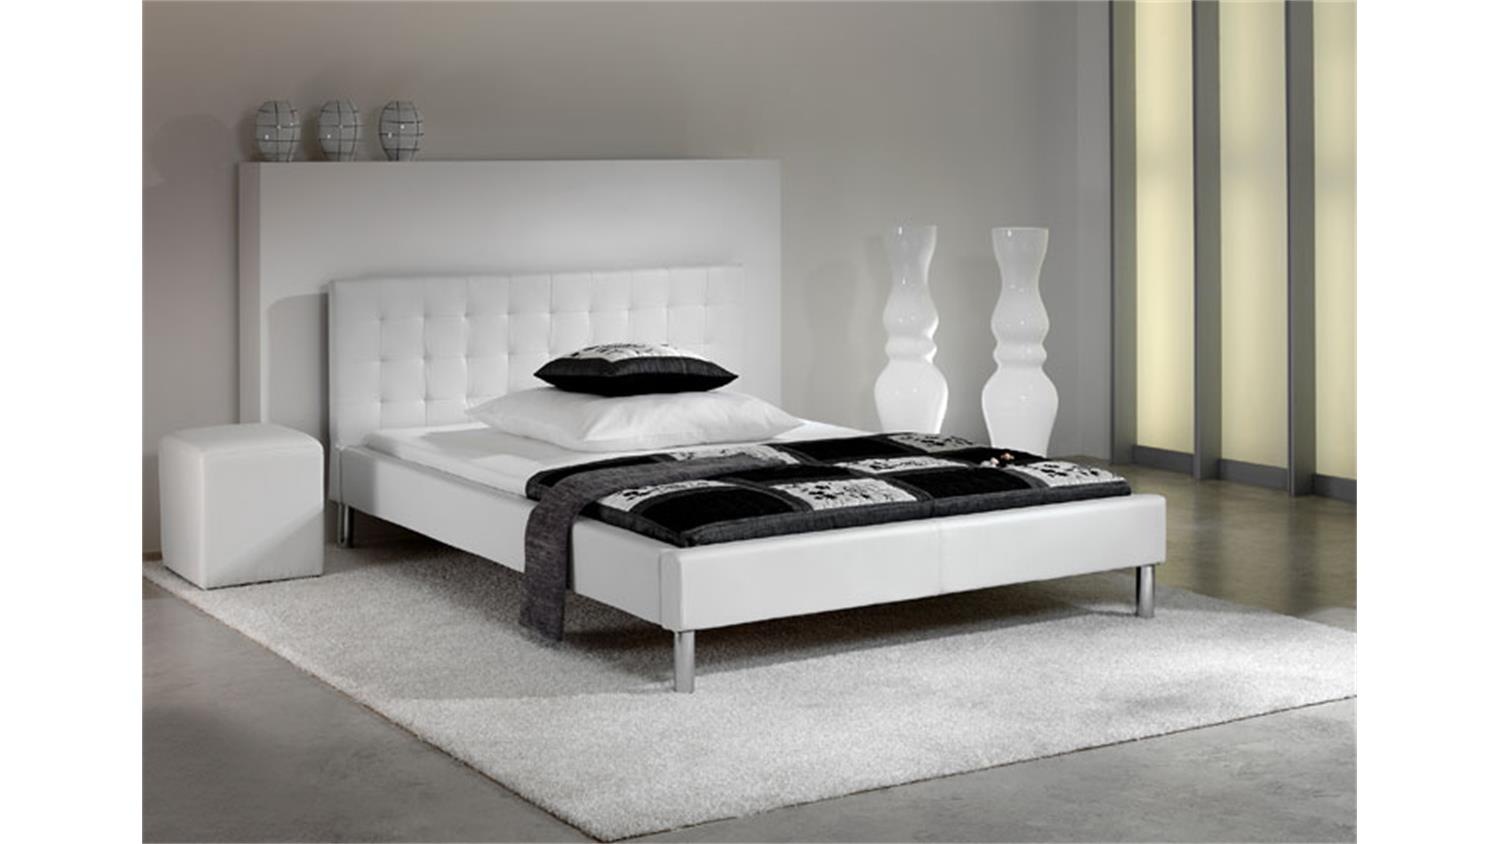 polsterbett mogy bett wei lederlook und chrom 140x200 cm. Black Bedroom Furniture Sets. Home Design Ideas